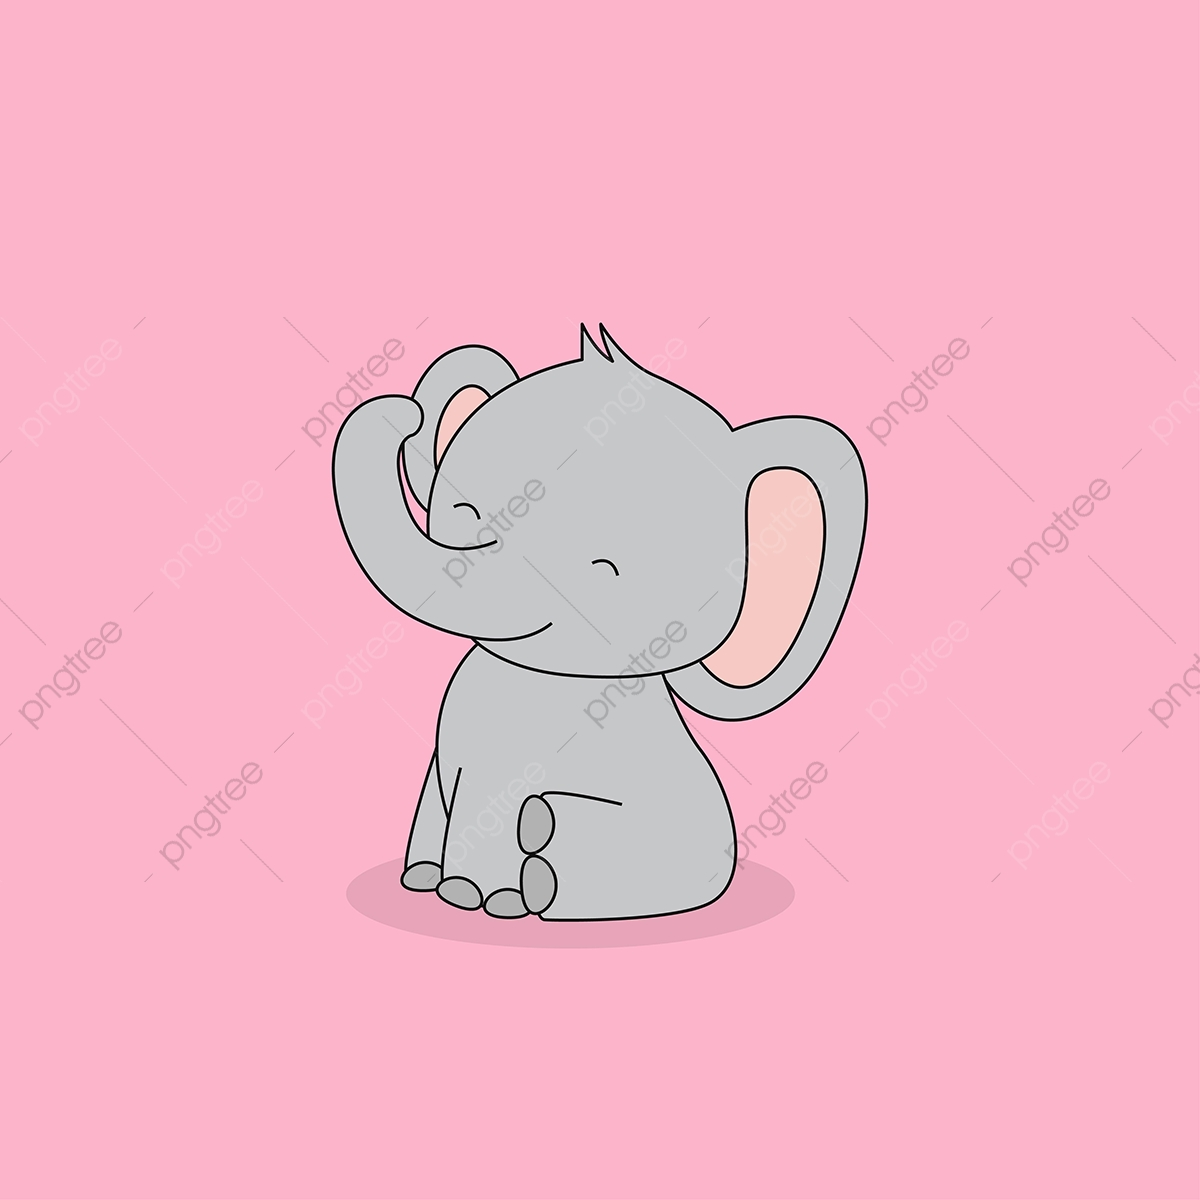 Cute Sitting Baby Elephant Elephant Clipart Elephant Baby Png And Vector With Transparent Background For Free Download Pink elephant, baby shower elephant infant, elephants, purple, mammal, child png. https pngtree com freepng cute sitting baby elephant 4188229 html